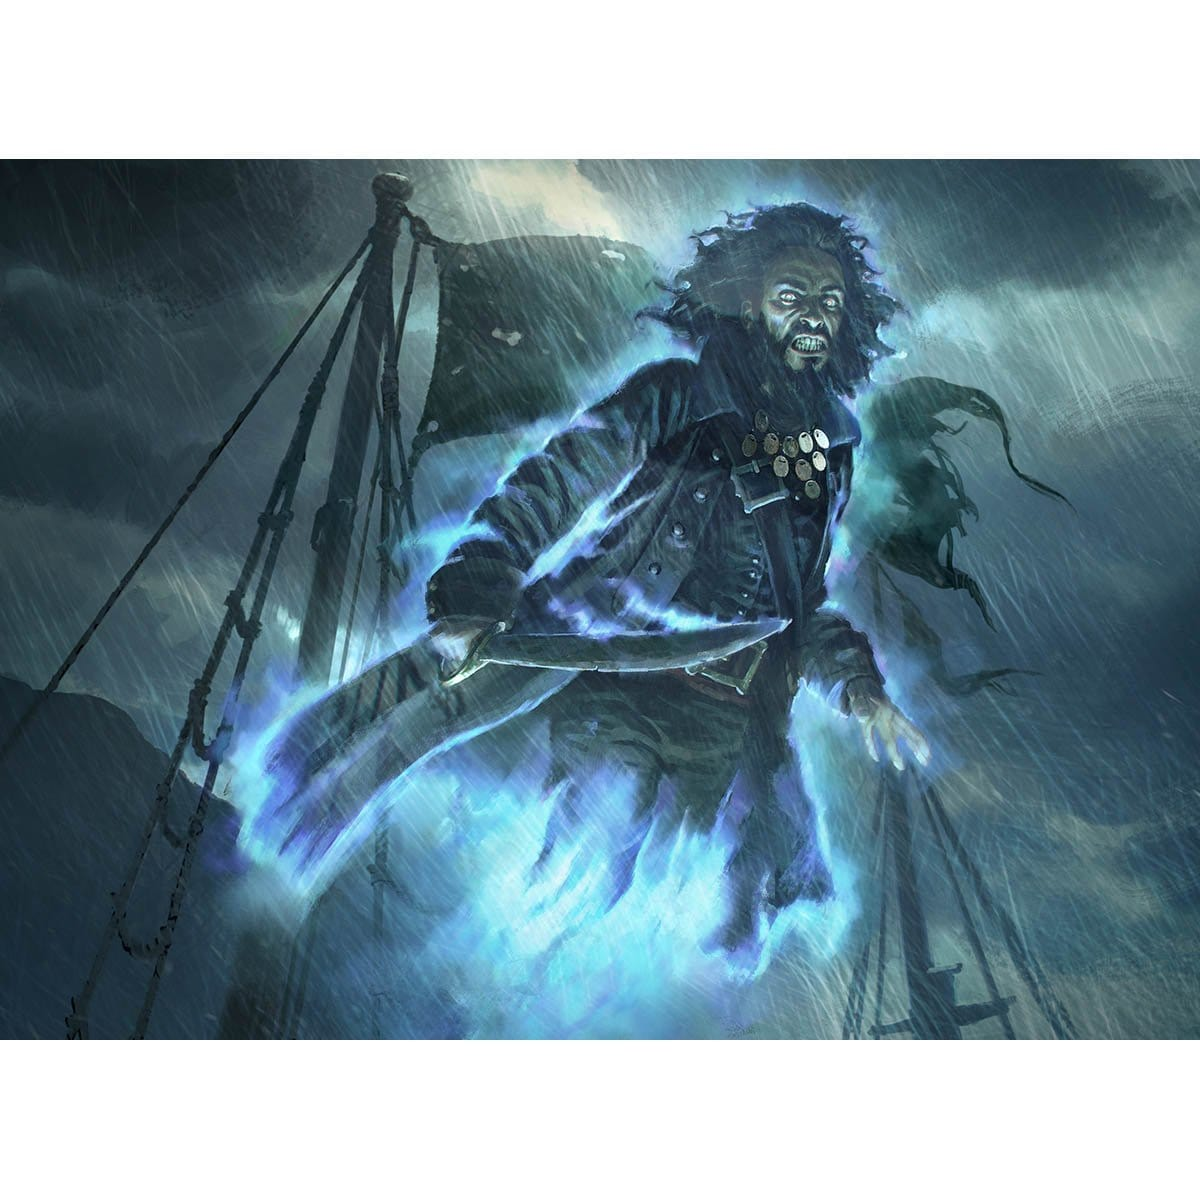 Spectral Sailor Print - Print - Original Magic Art - Accessories for Magic the Gathering and other card games